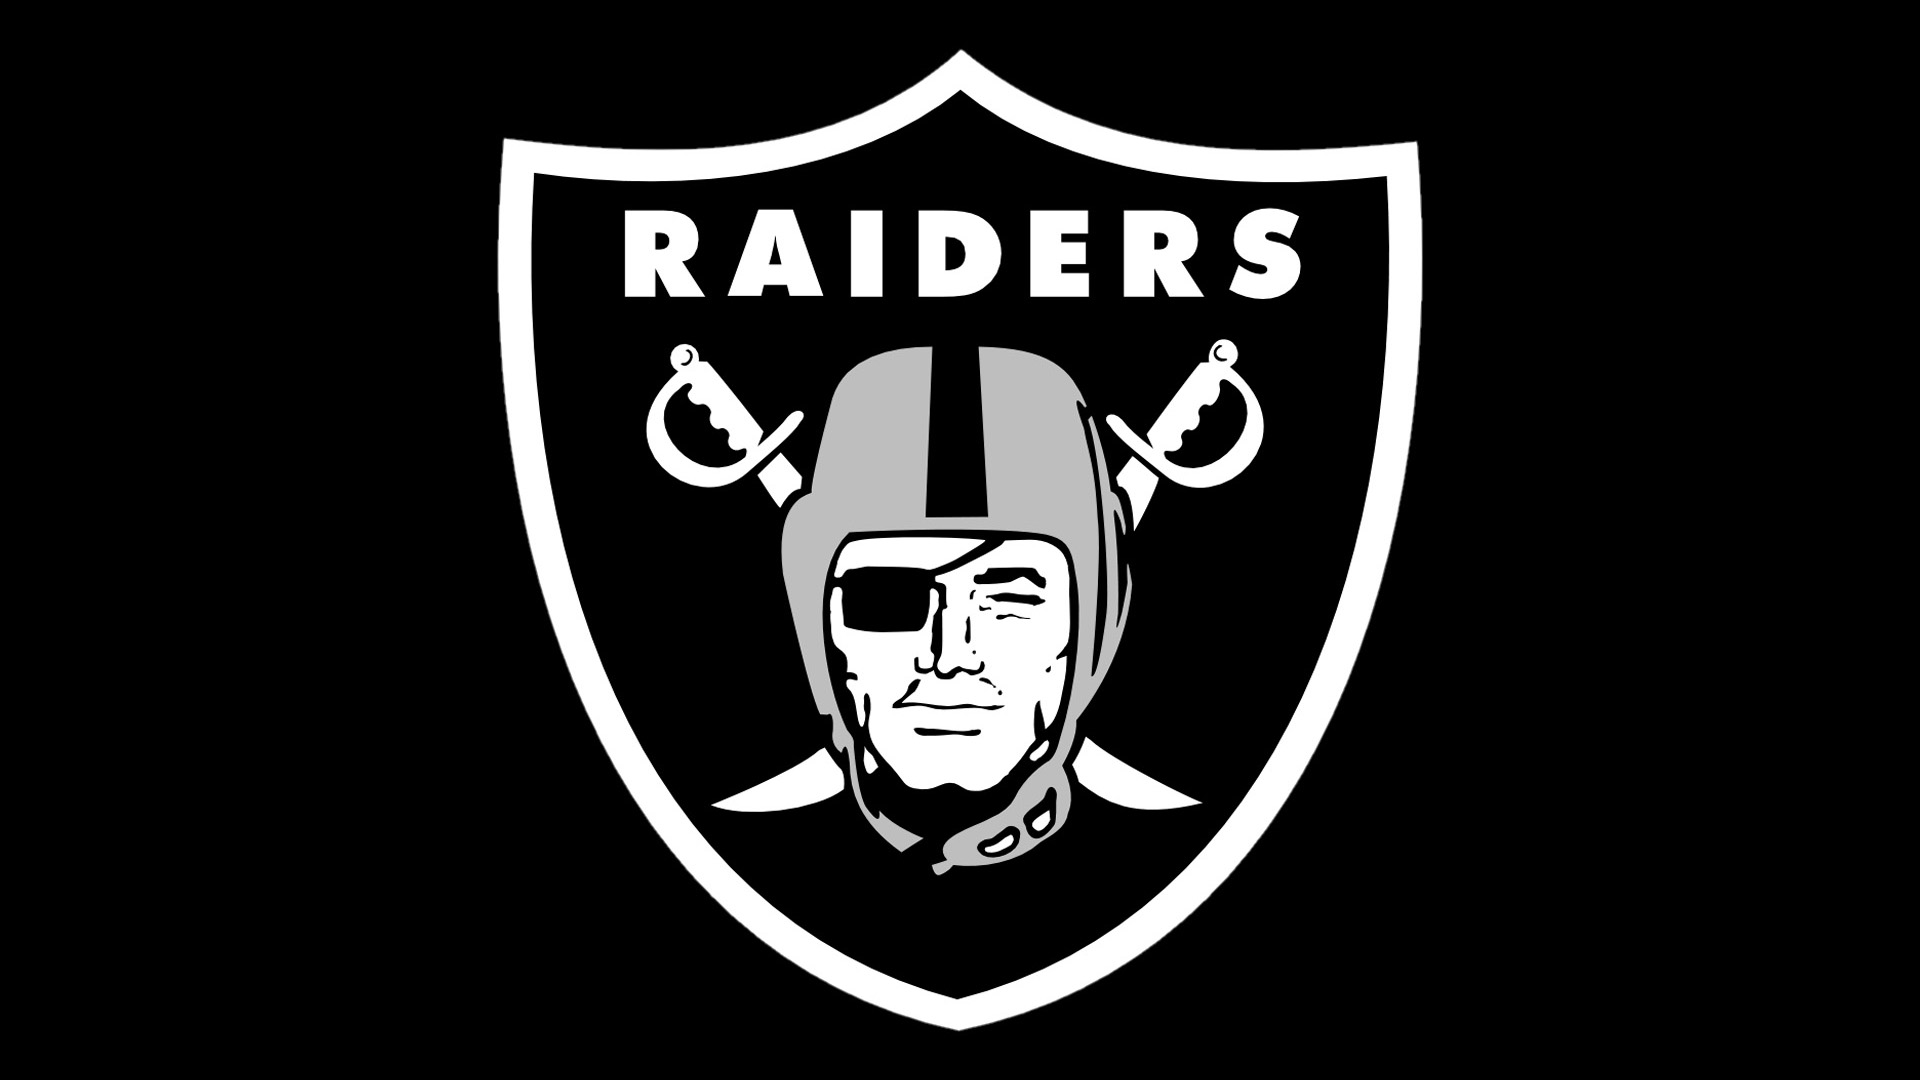 logos wallpapers pixels black oakland raiders 1920x1080 1920x1080